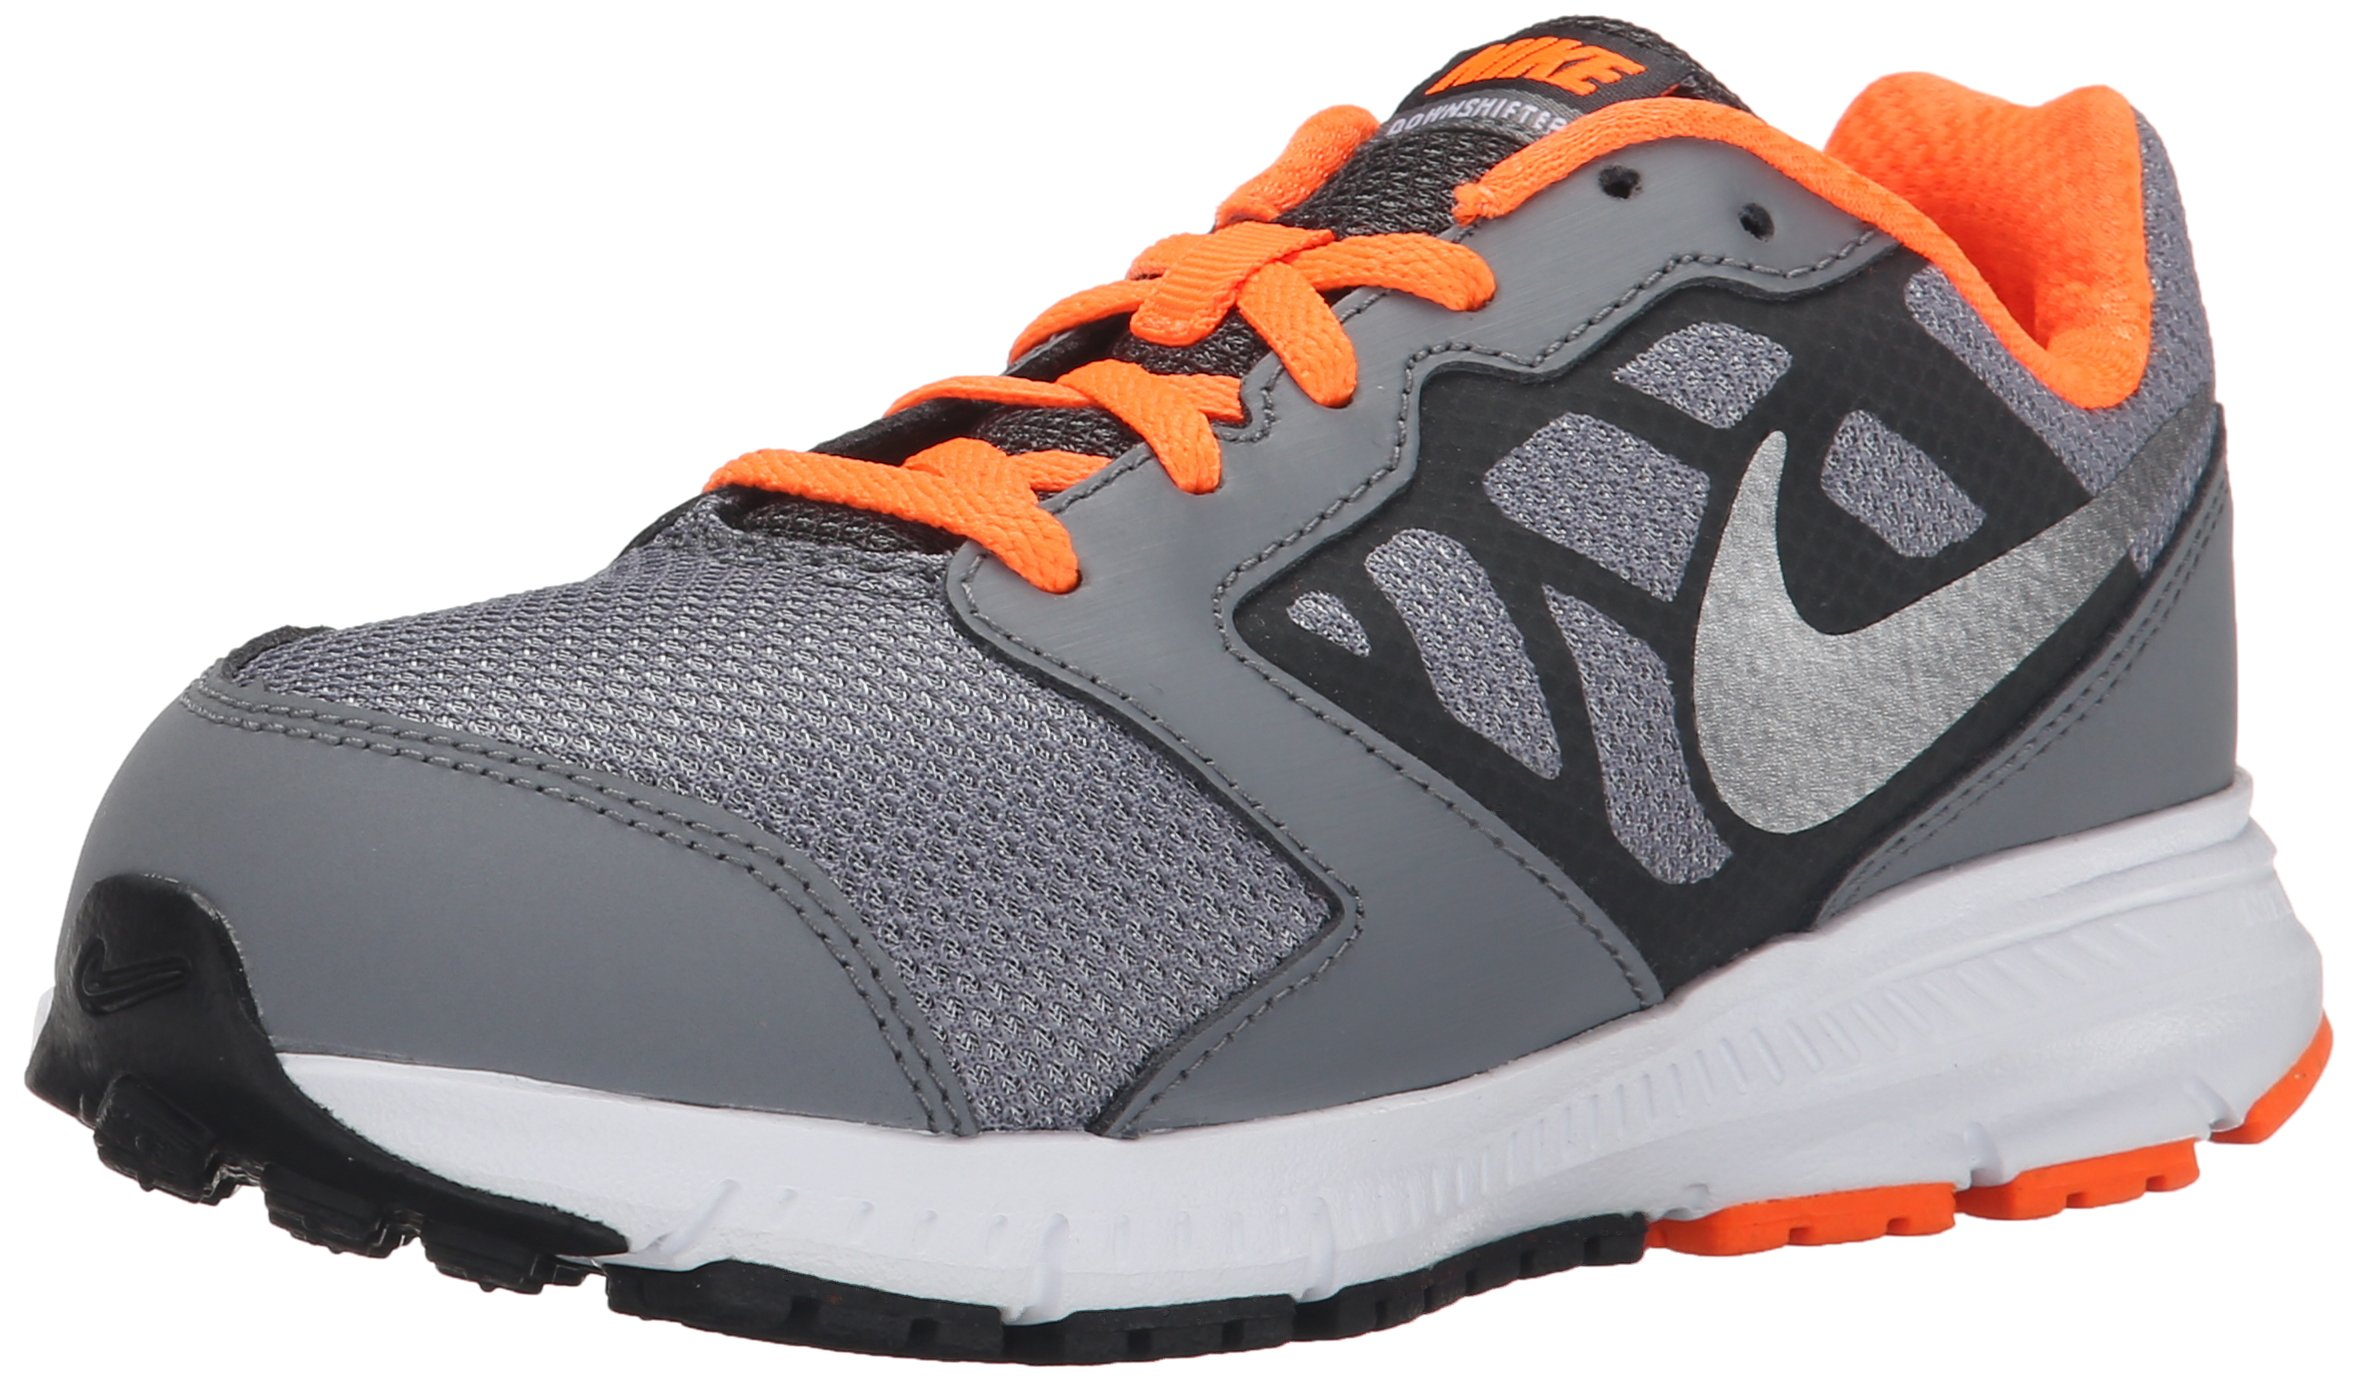 super popular e3fc9 9d46c Galleon - NIKE Boys  Downshifter 6 Running Shoe (GS PS), Cool Grey Metallic  Silver Total Orange, 4.5 M US Big Kid